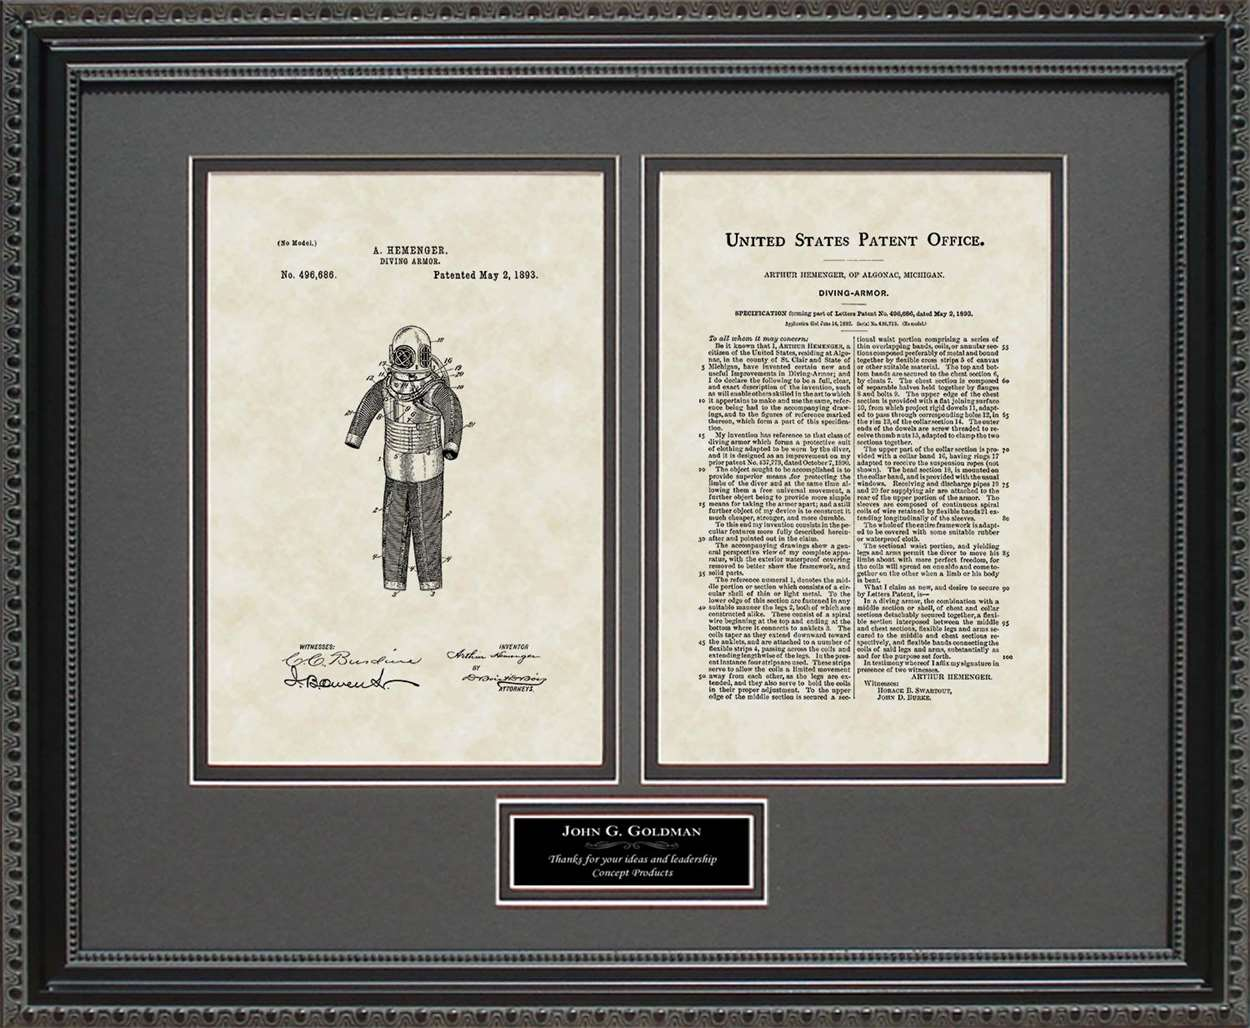 Personalized Diving Suit Patent, Art & Copy, Hemenger, 1893